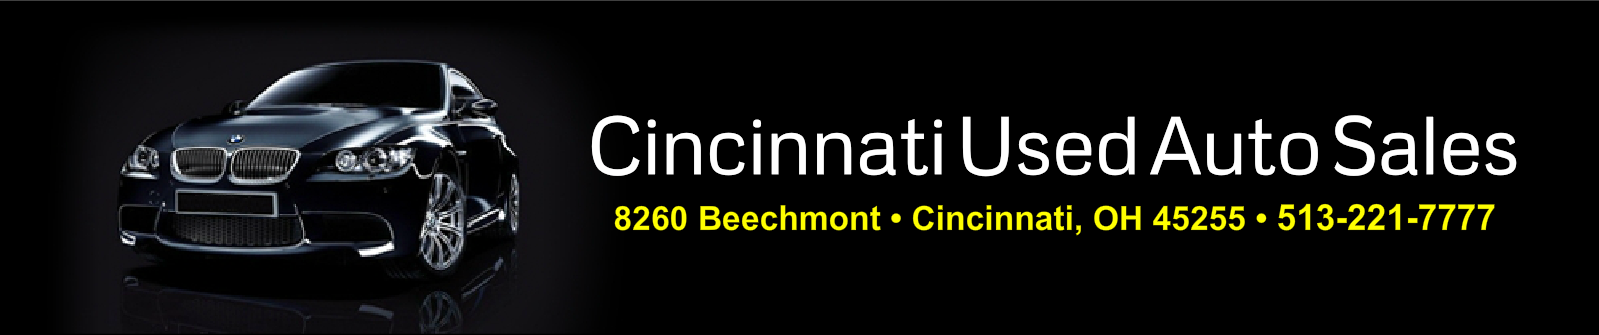 Cincinnati Used Auto Sales LLC